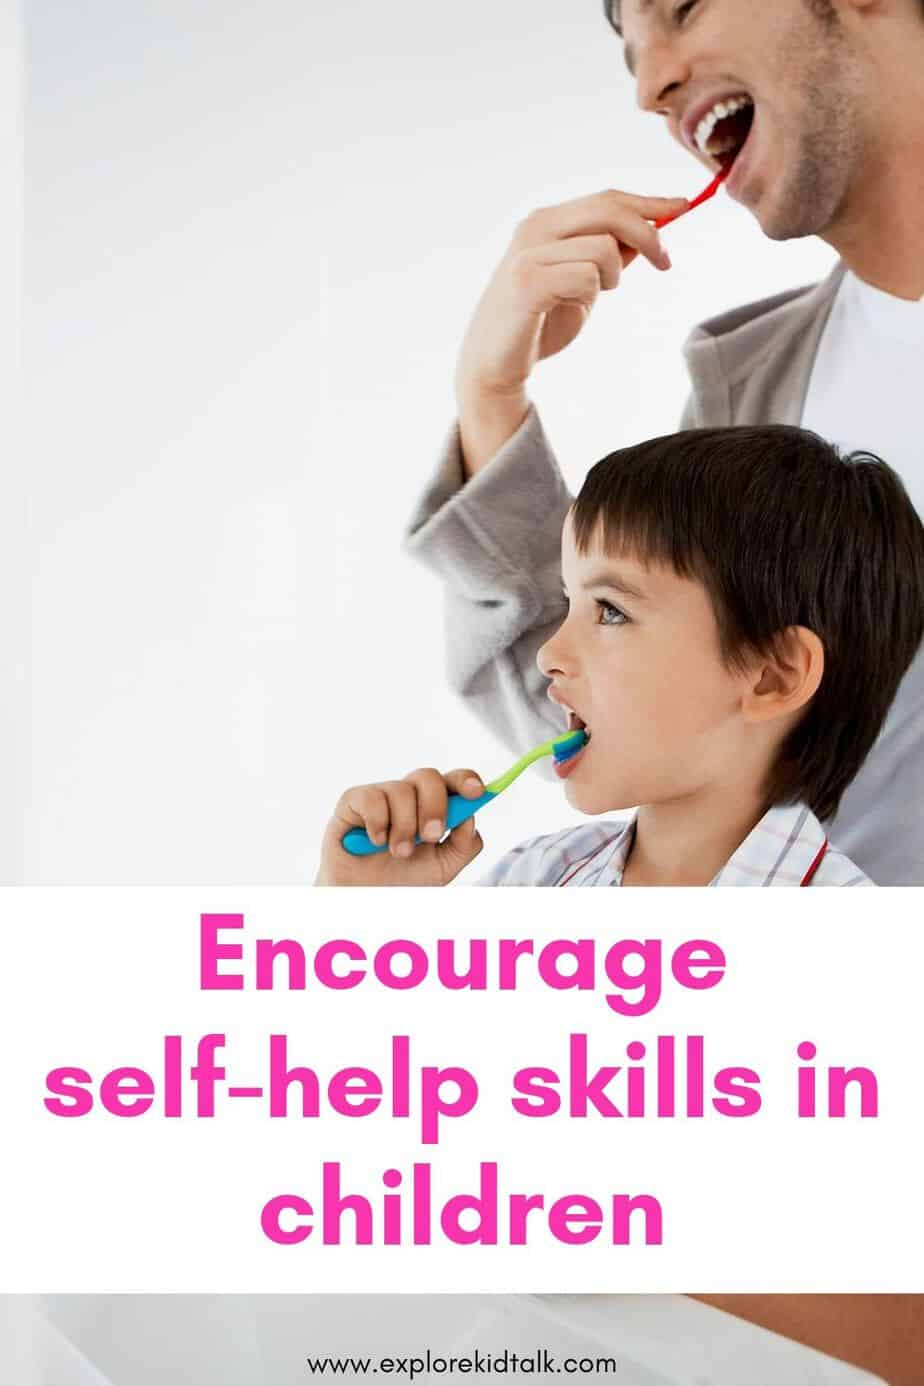 Child and Dad brushing teeth. Teaching self-help skills